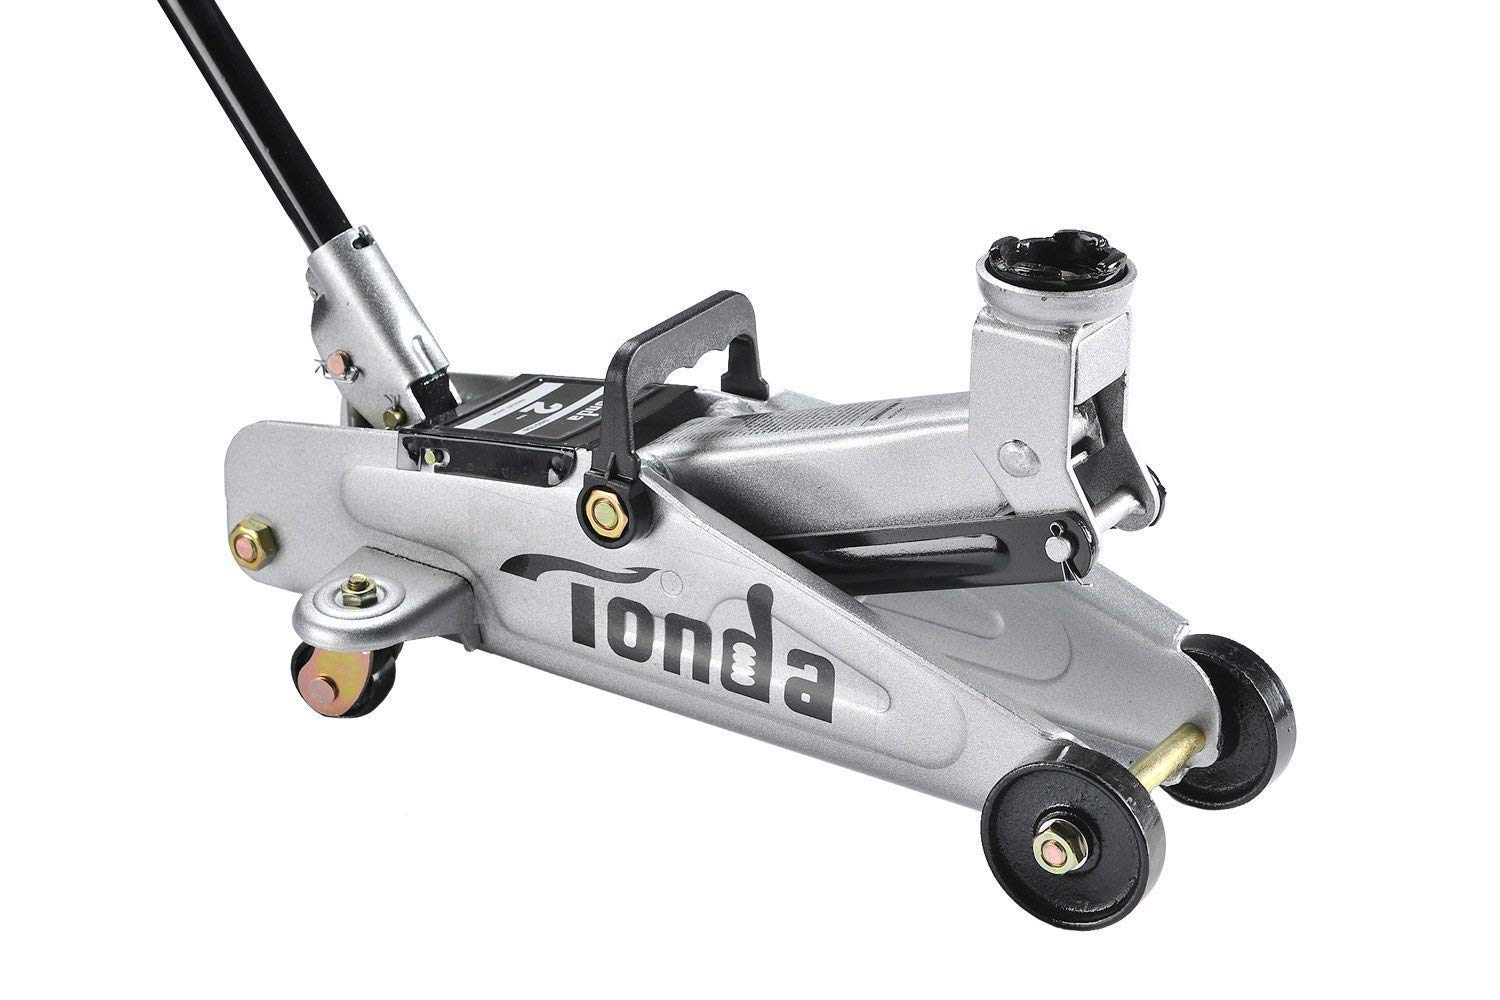 TONDA Floor Jack, 2 Ton Hydraulic Trolley Car Jack, Work for Sedan and Coupe